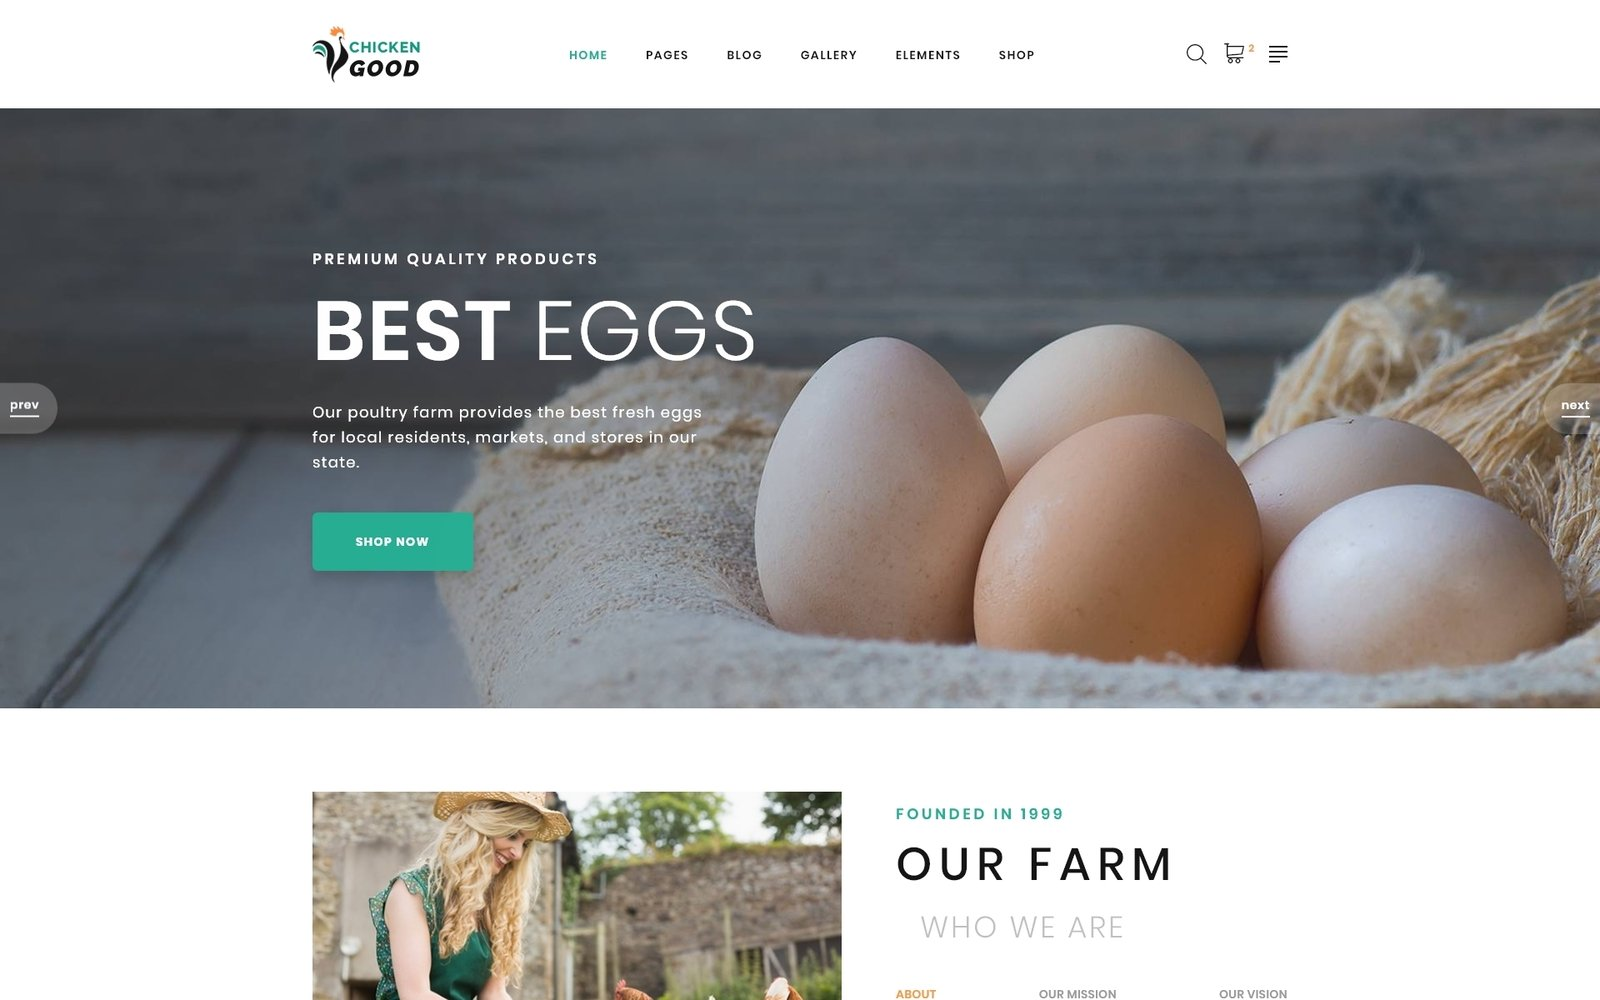 Chicken Good - Poultry Farm Multipage HTML Website Template